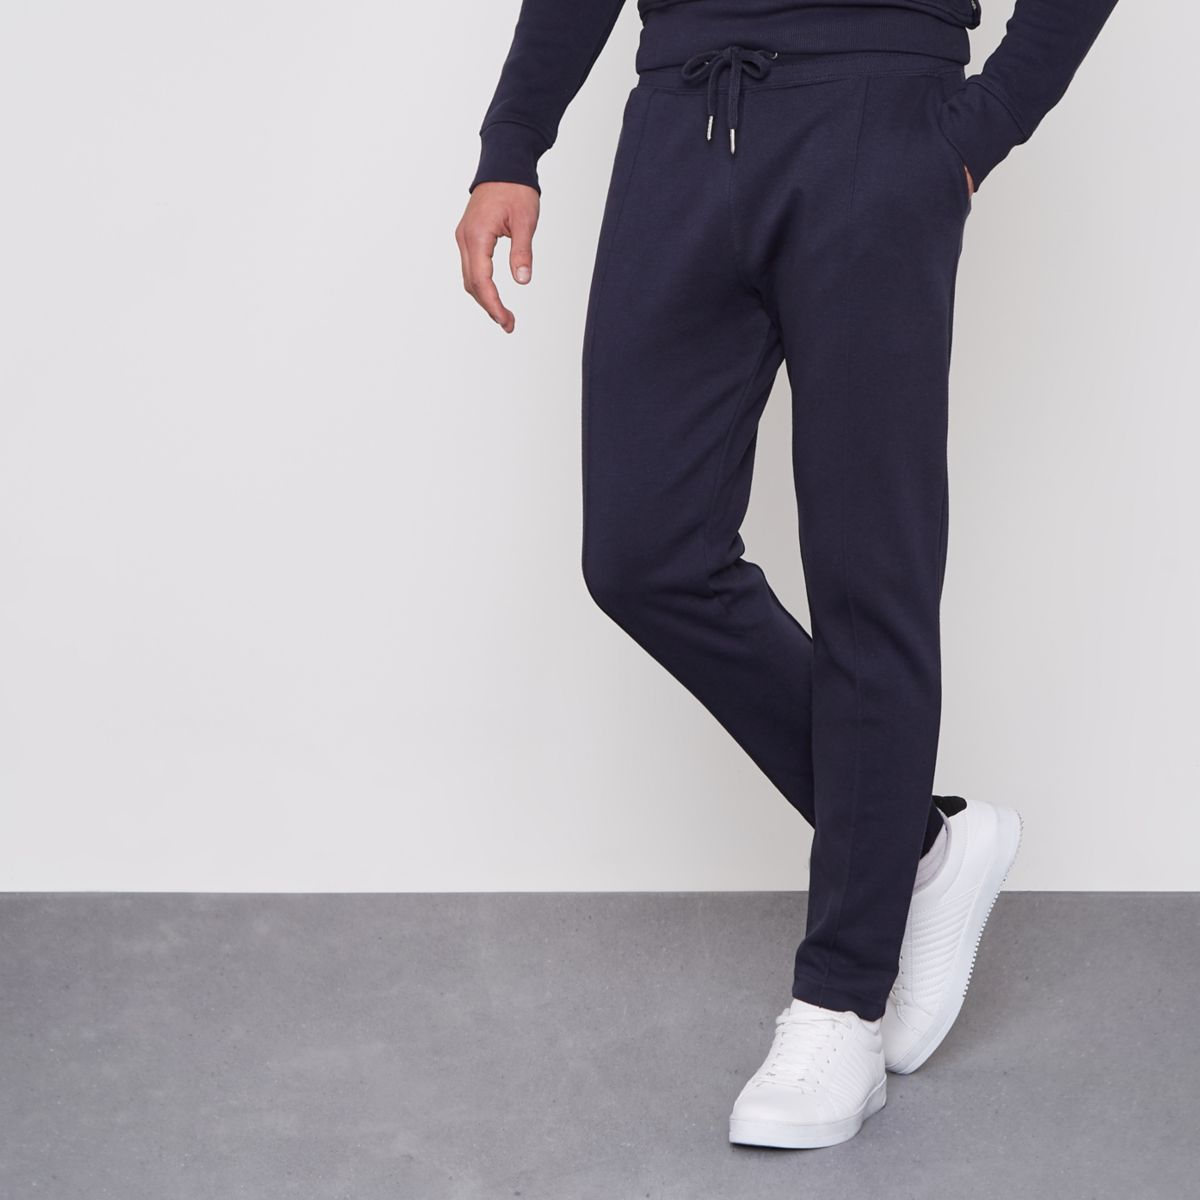 Navy muscle fit pique joggers